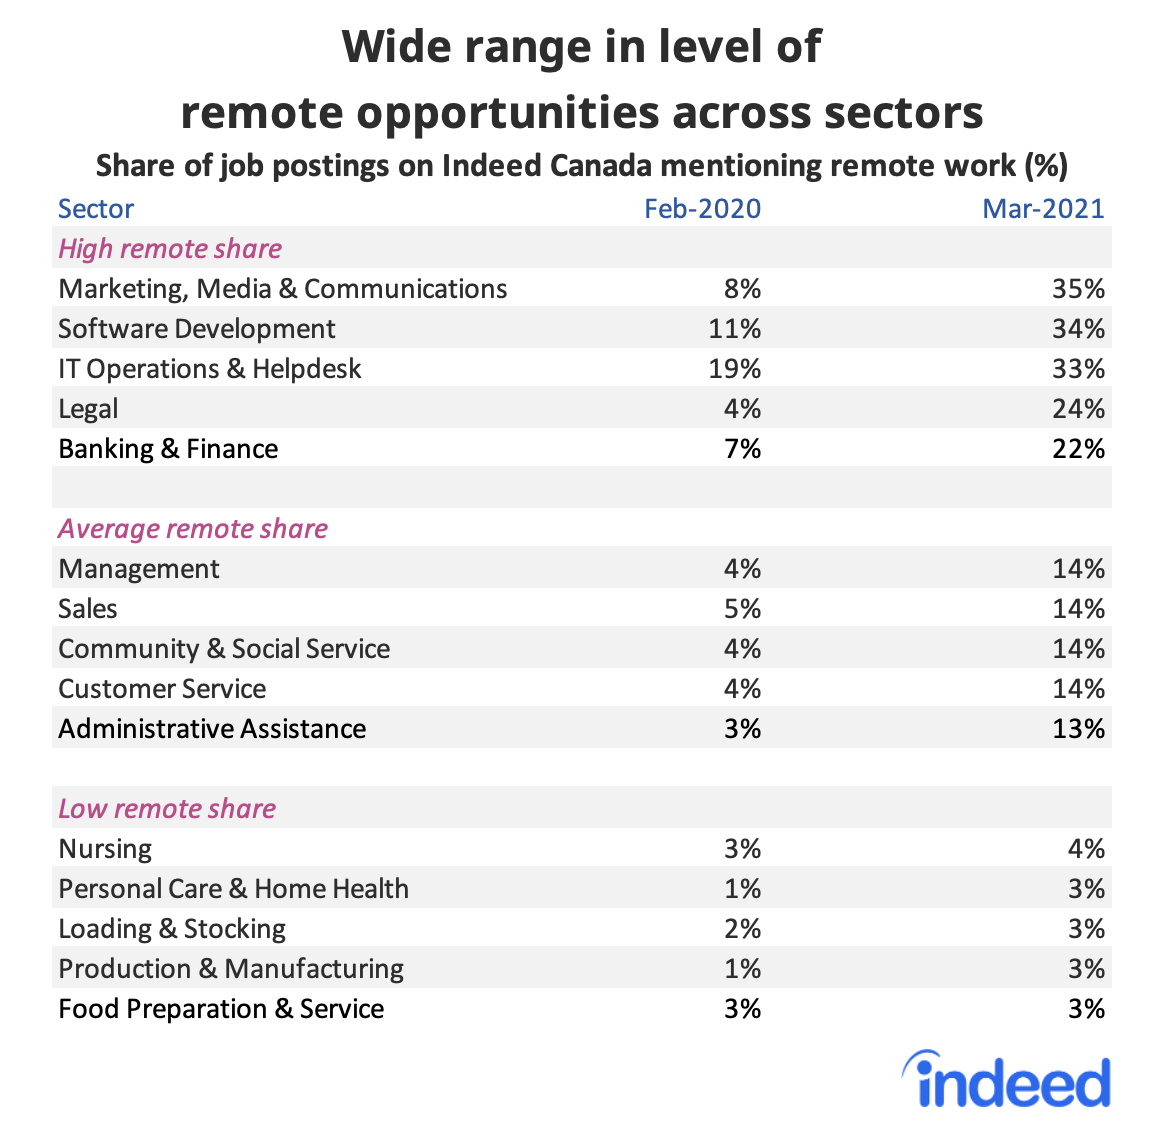 Table showing wide range in level of remote work opportunities across sectors